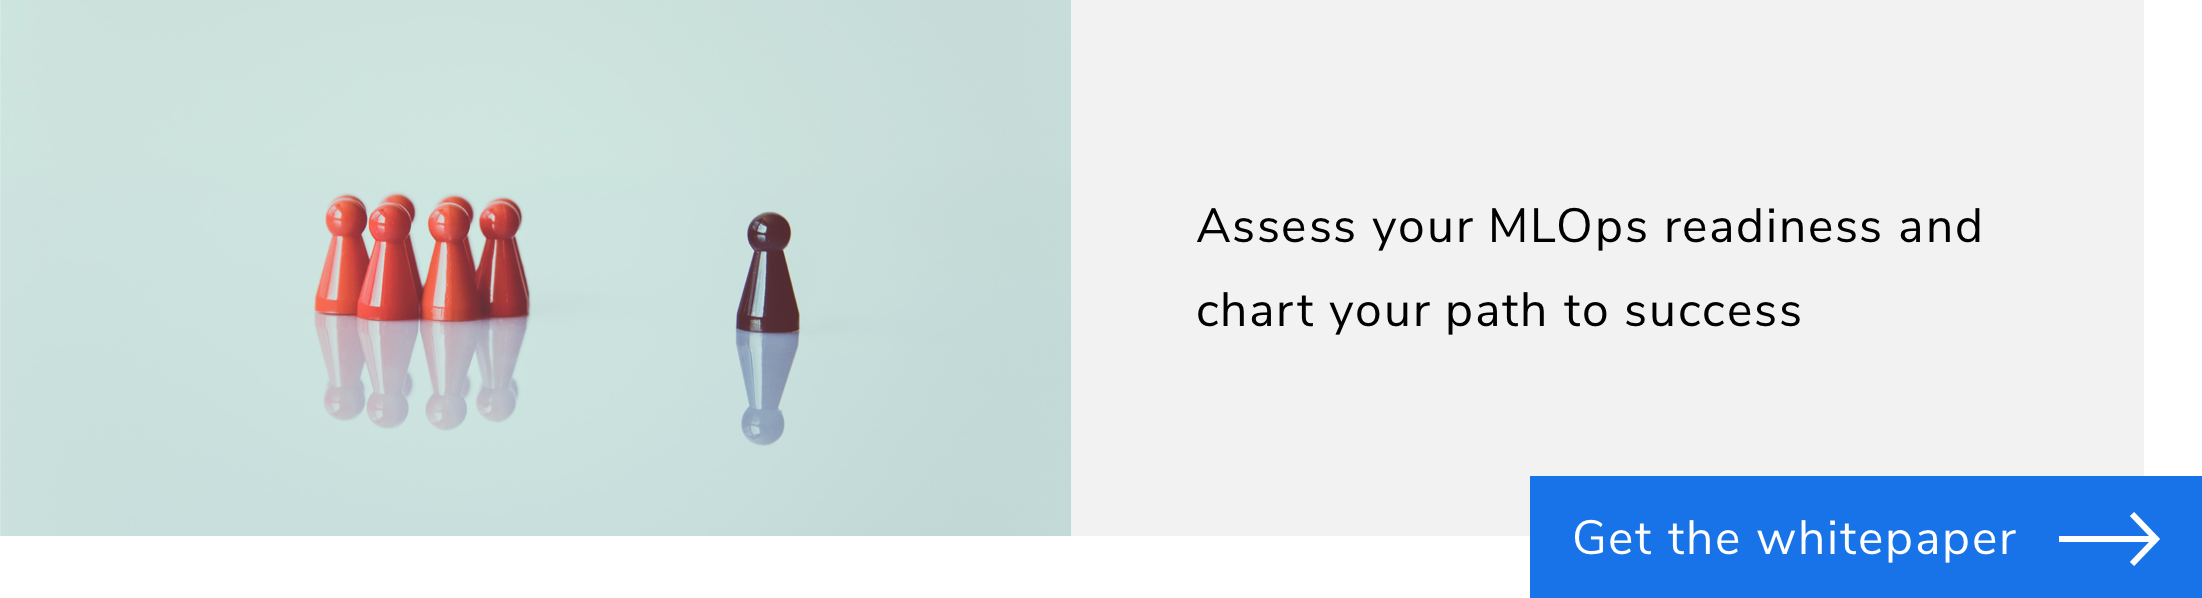 Assess your MLOps readiness and chart your path to maturity